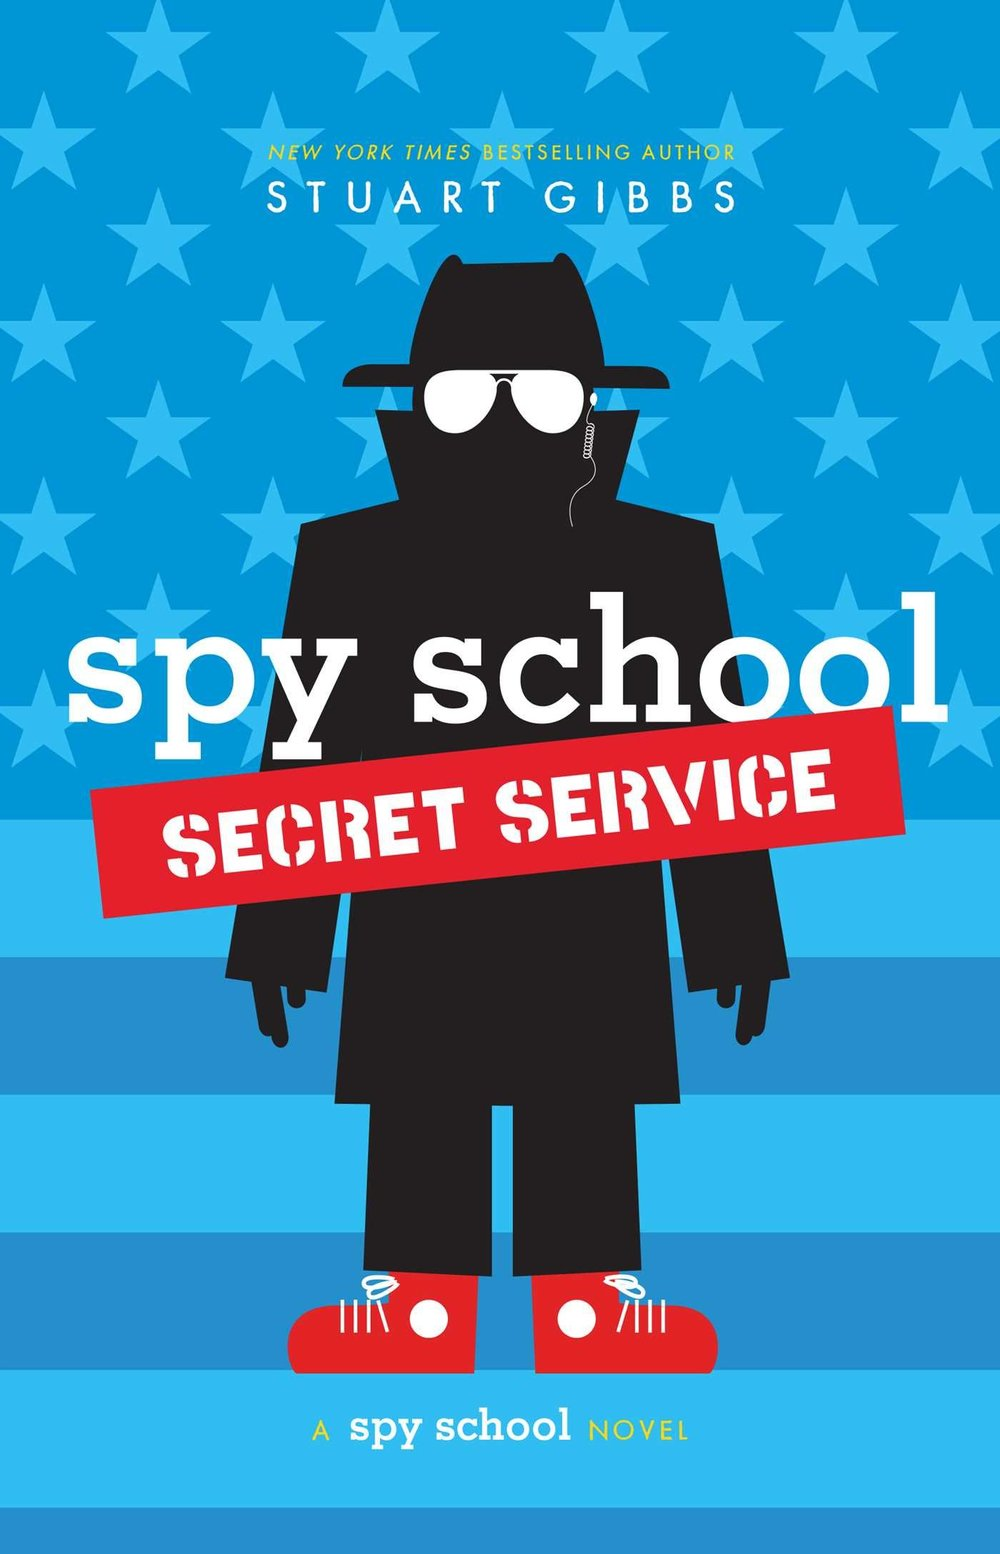 Spy School Secret Service.jpg